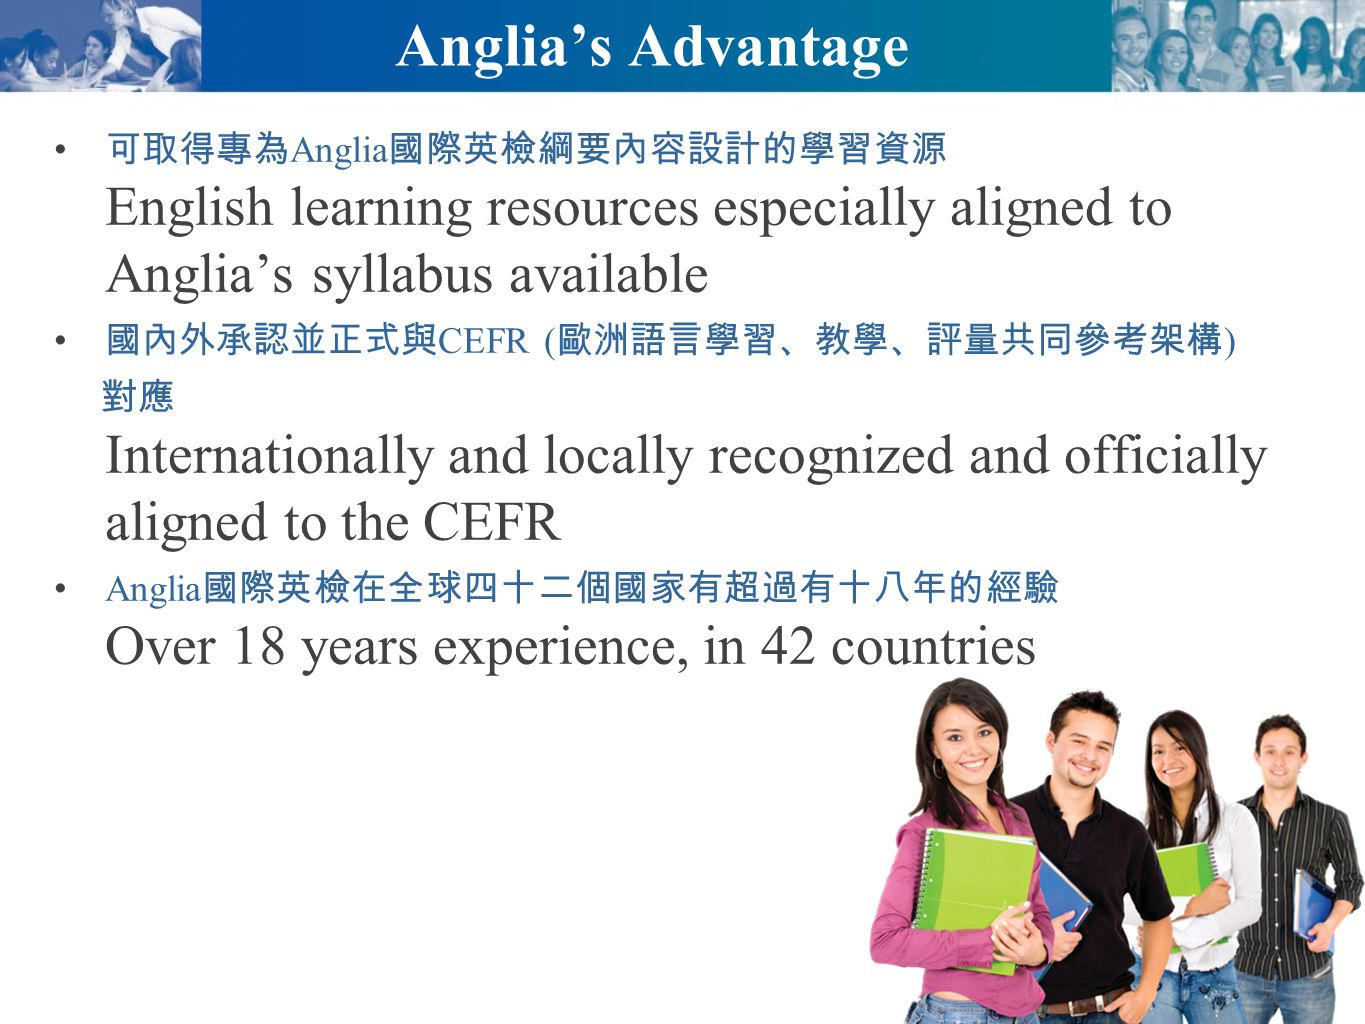 Anglia's Advantage 可取得專為Anglia國際英檢綱要內容設計的學習資源 English learning resources especially aligned to Anglia's syllabus available.